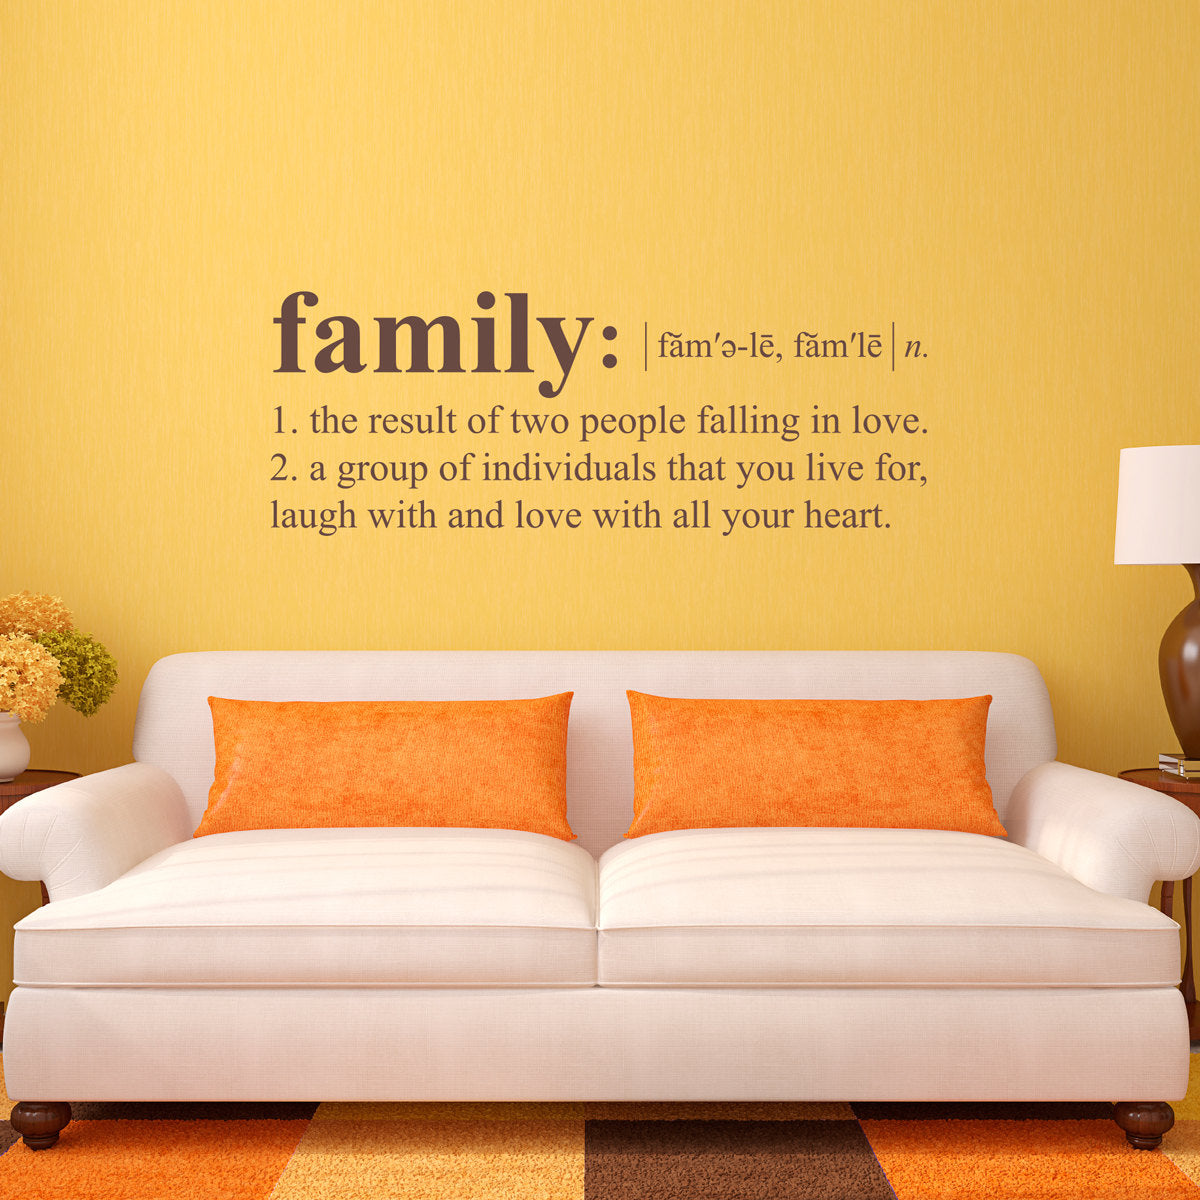 Family Definition Wall Decal Dictionary Definition Decal Family